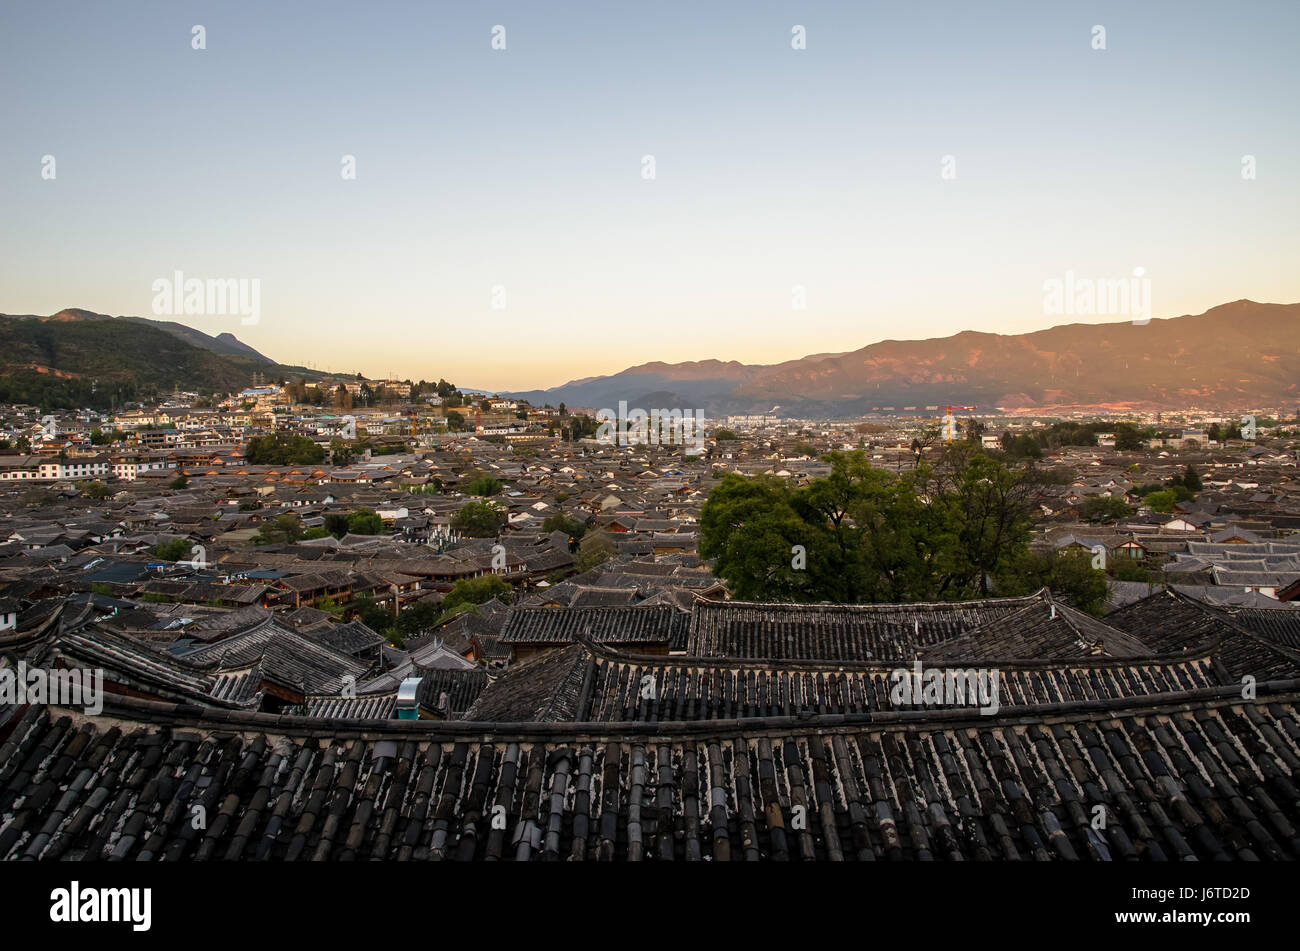 Evening bird eye view of local historical architecture roof building of Old Town of Lijiang in Yunnan, China. - Stock Image